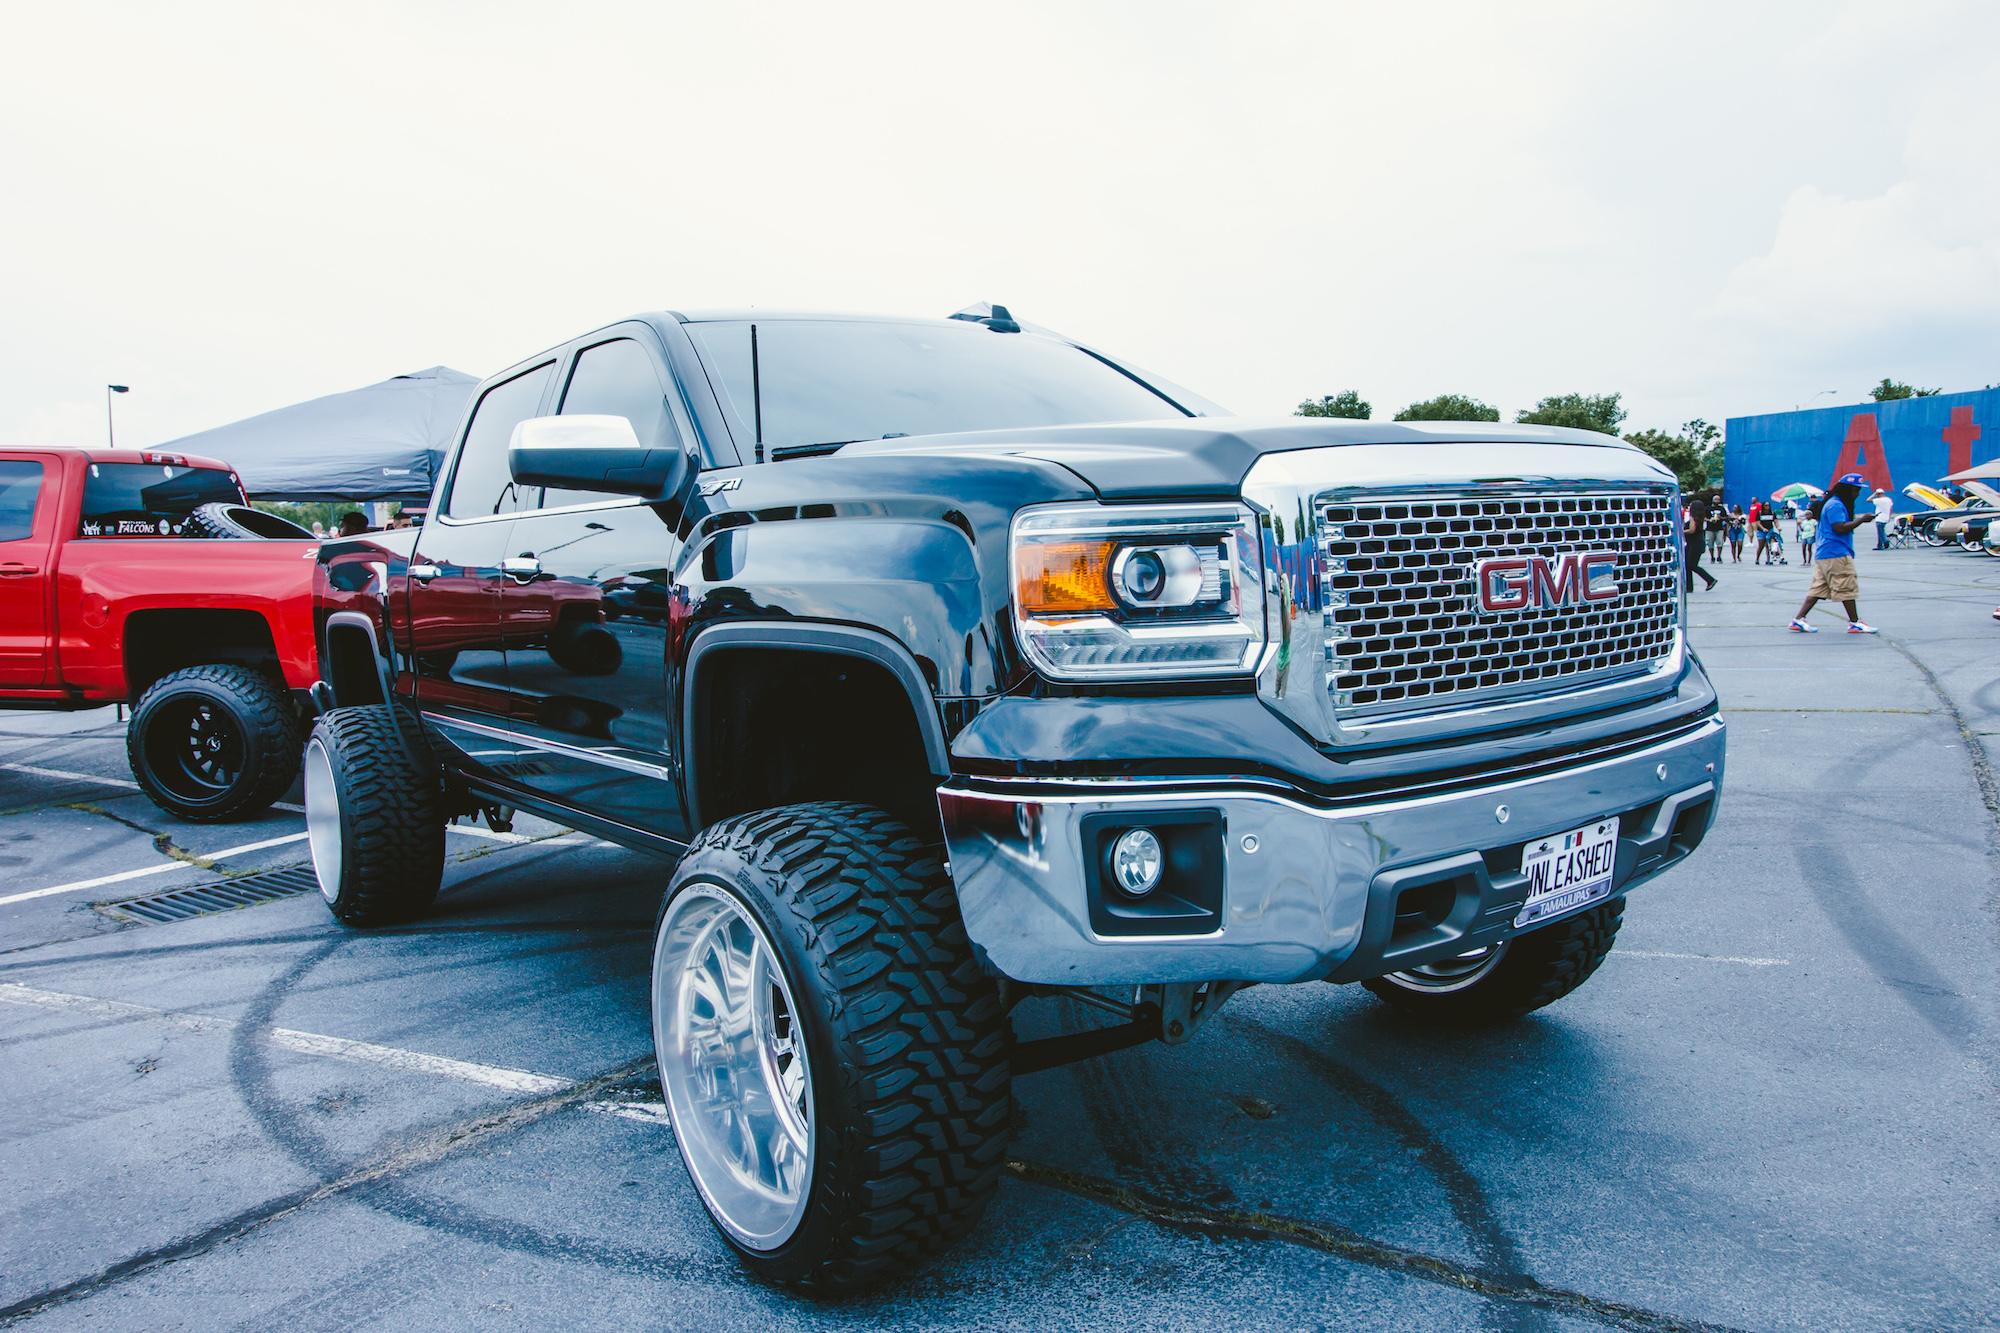 Lifted Trucks Of The Certified Summer Car Show Expedition Georgia - Falcon field car show 2018